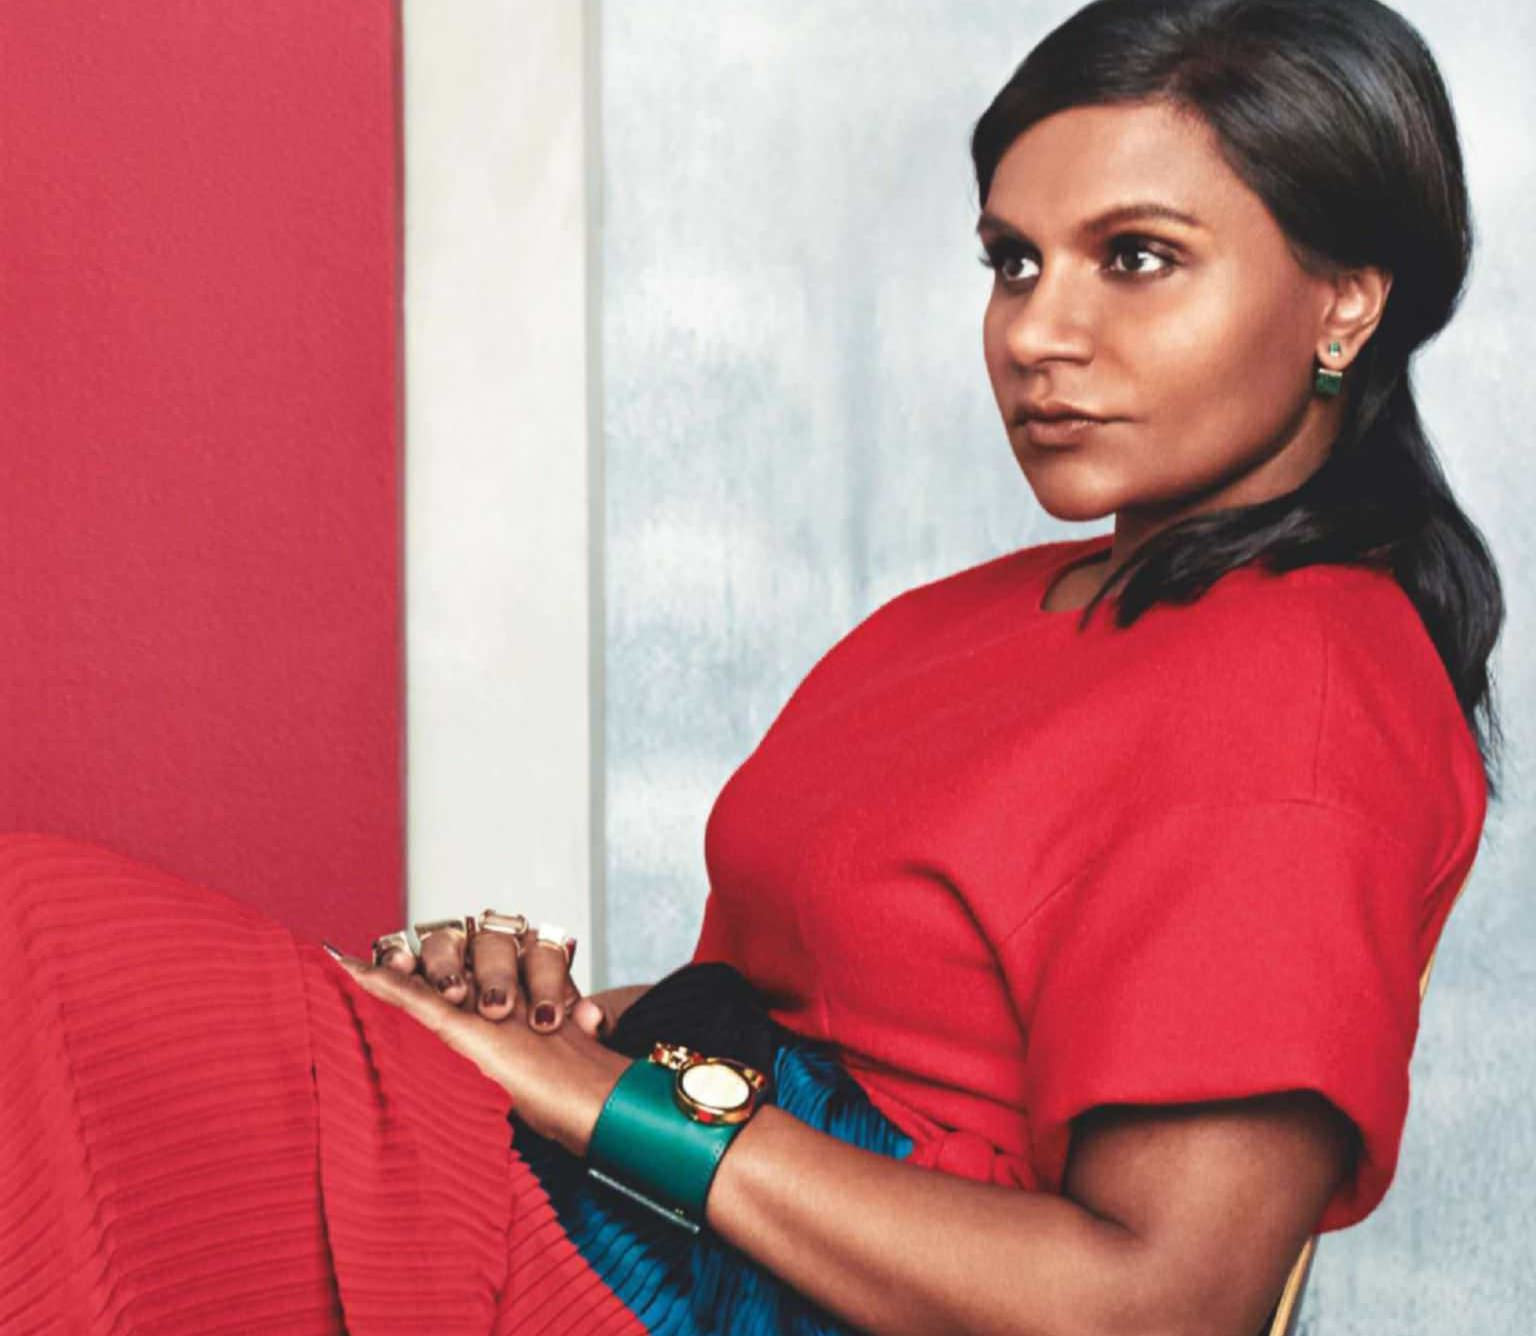 Mindy Kaling: Seriously Funny